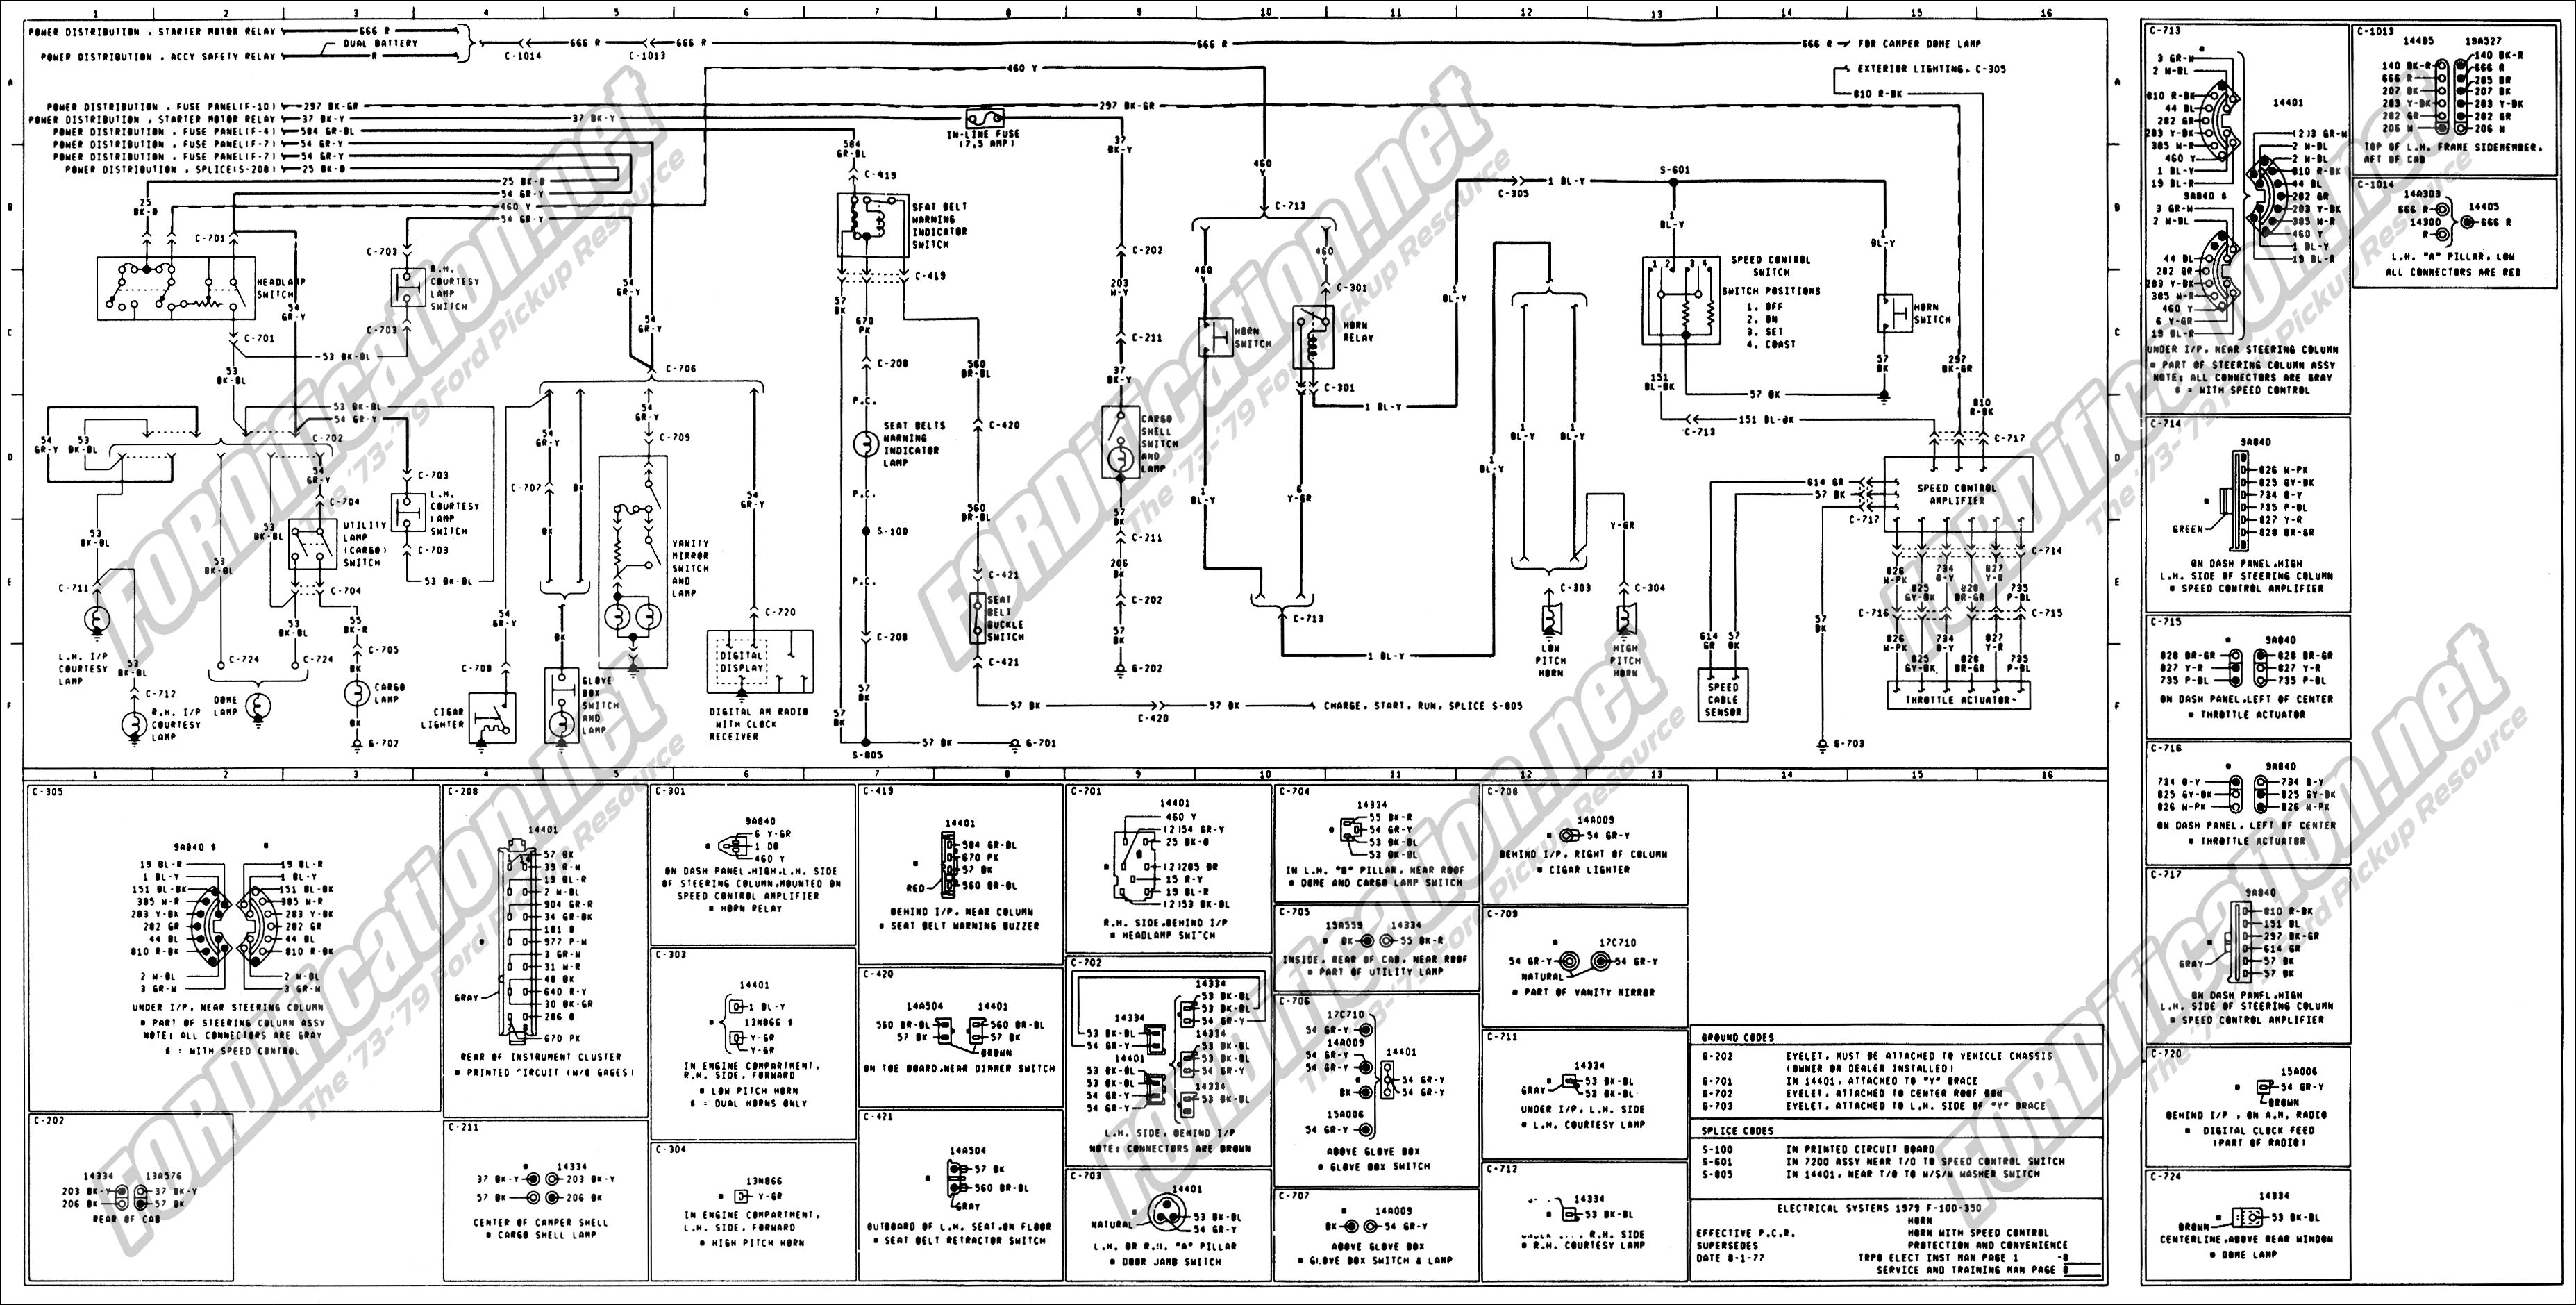 1973 1979 ford truck wiring diagrams & schematics fordification net 2000 Ford Excursion Wiring Schematic  2005 Ford Expedition Wiring Schematic 2012 Ford F550 Wiring Schematic 1991 Ford F-350 Diesel Wiring Diagrams